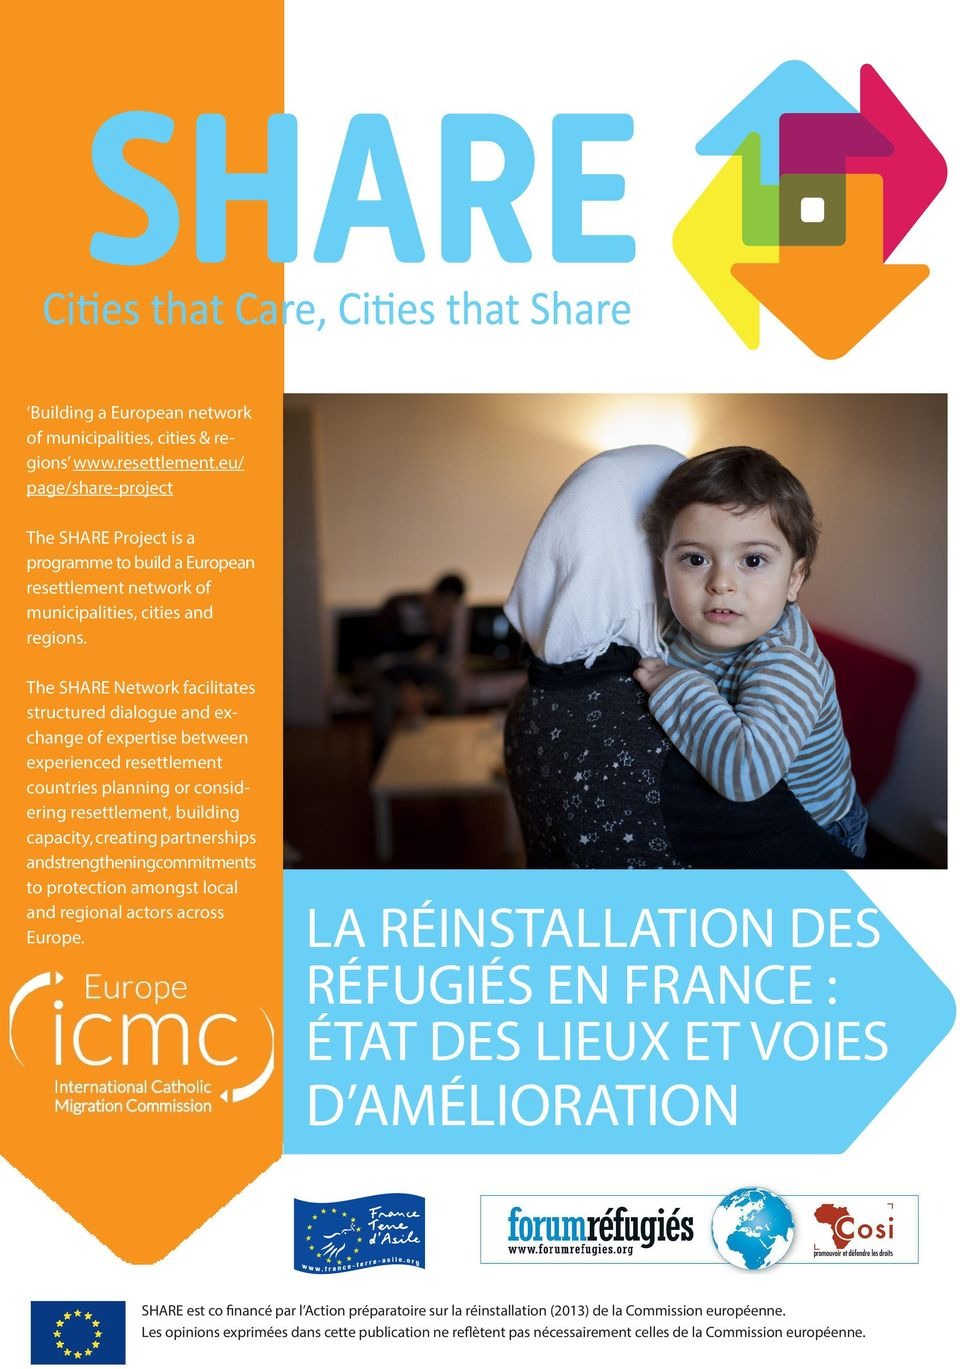 The SHARE Network facilitates structured dialogue and exchange of expertise between experienced resettlement countries planning or considering resettlement, building capacity, creating partnerships